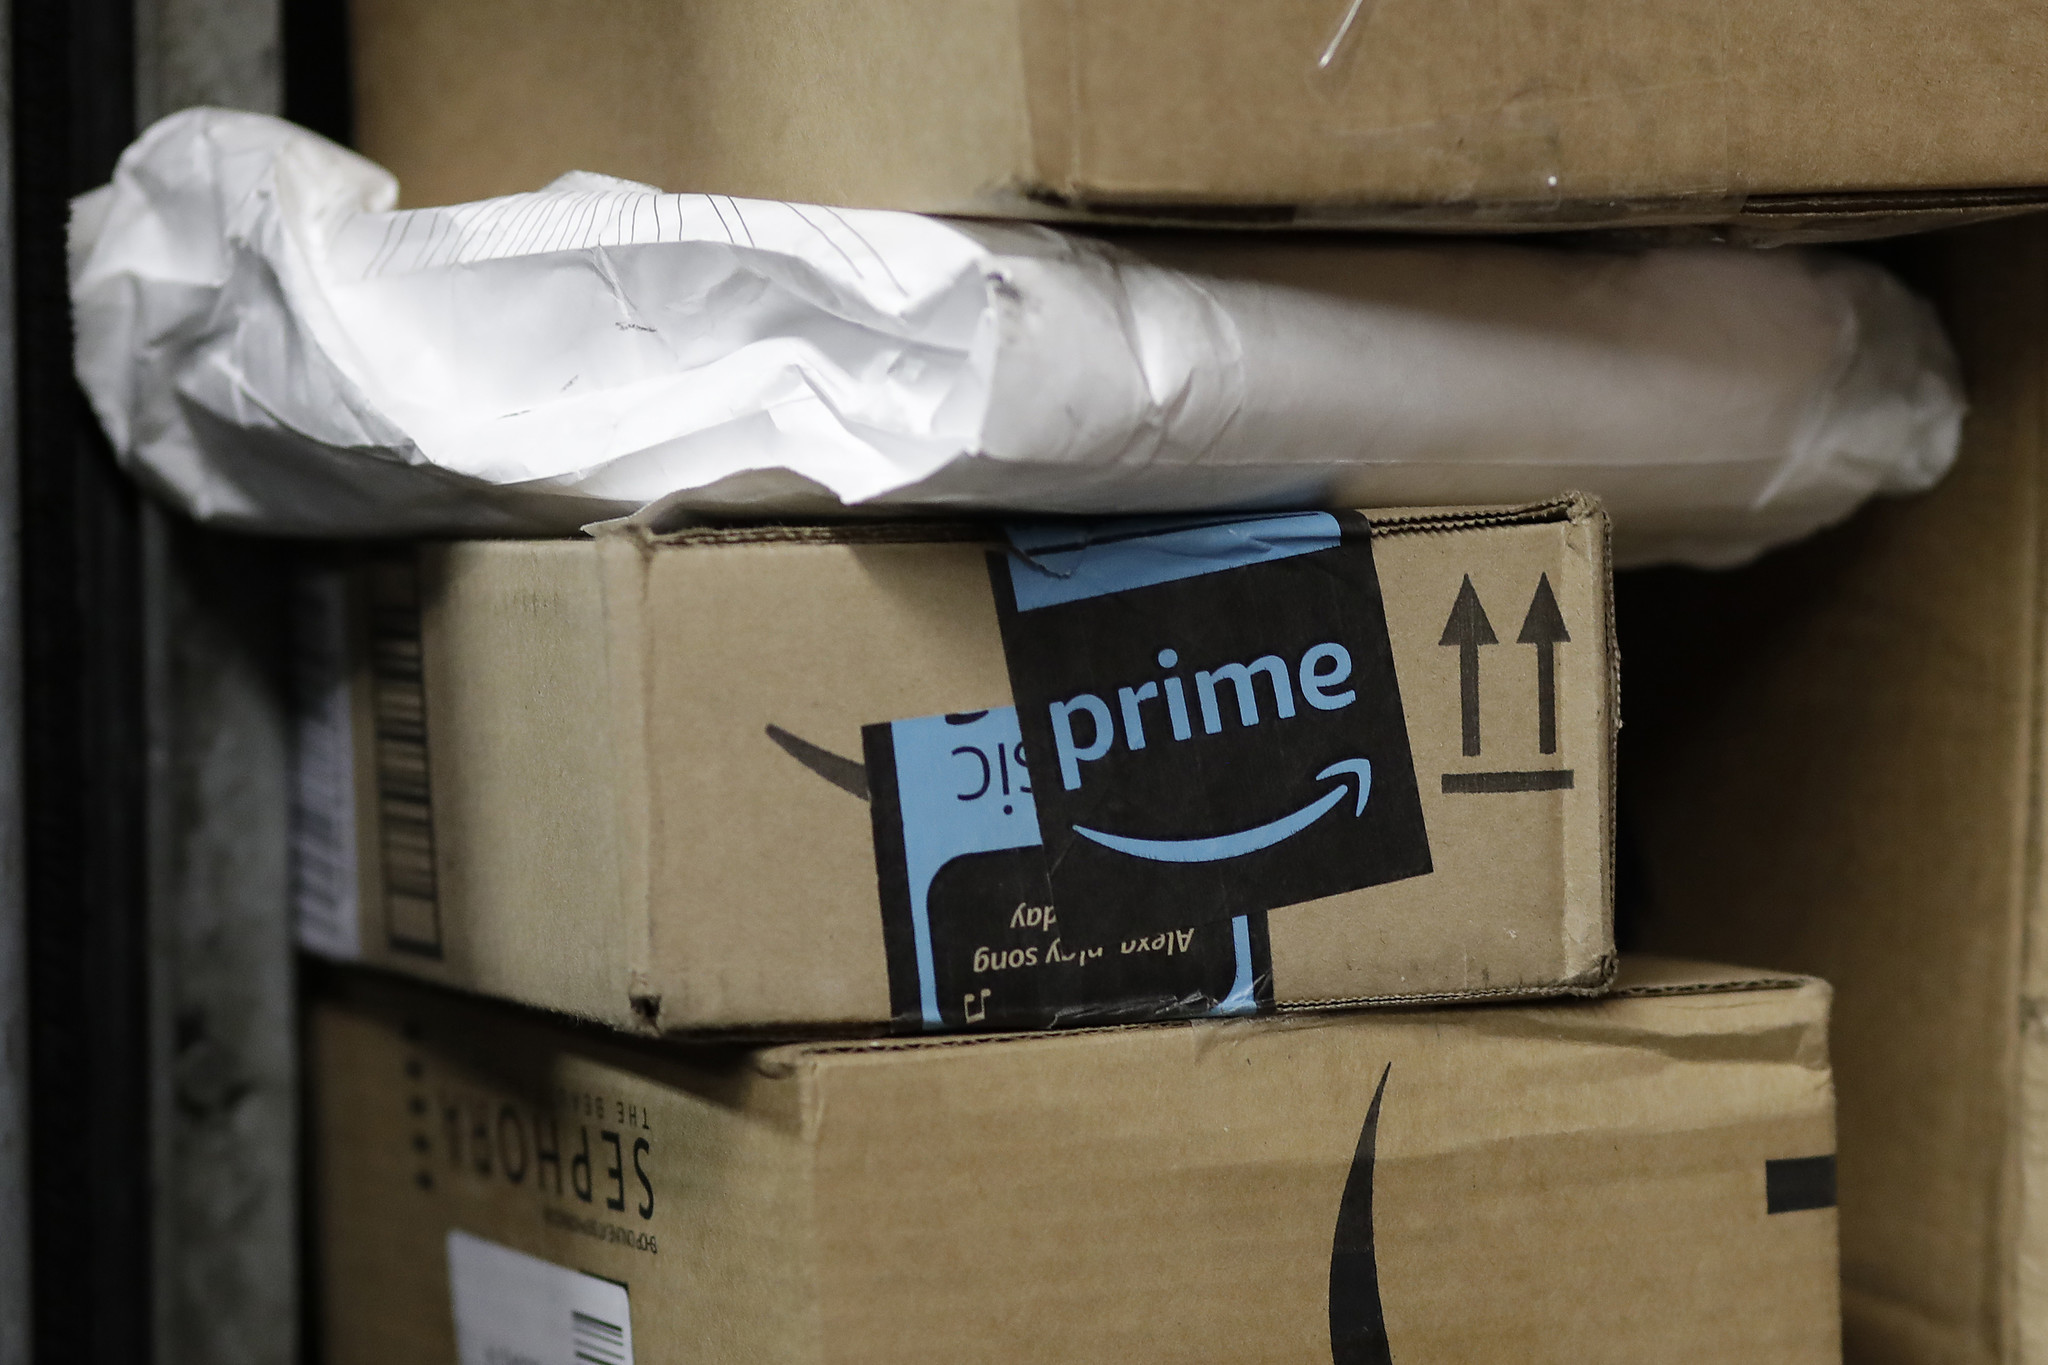 Amazon will host its annual Prime Day on July 11. Expect other companies to offer similar sales.